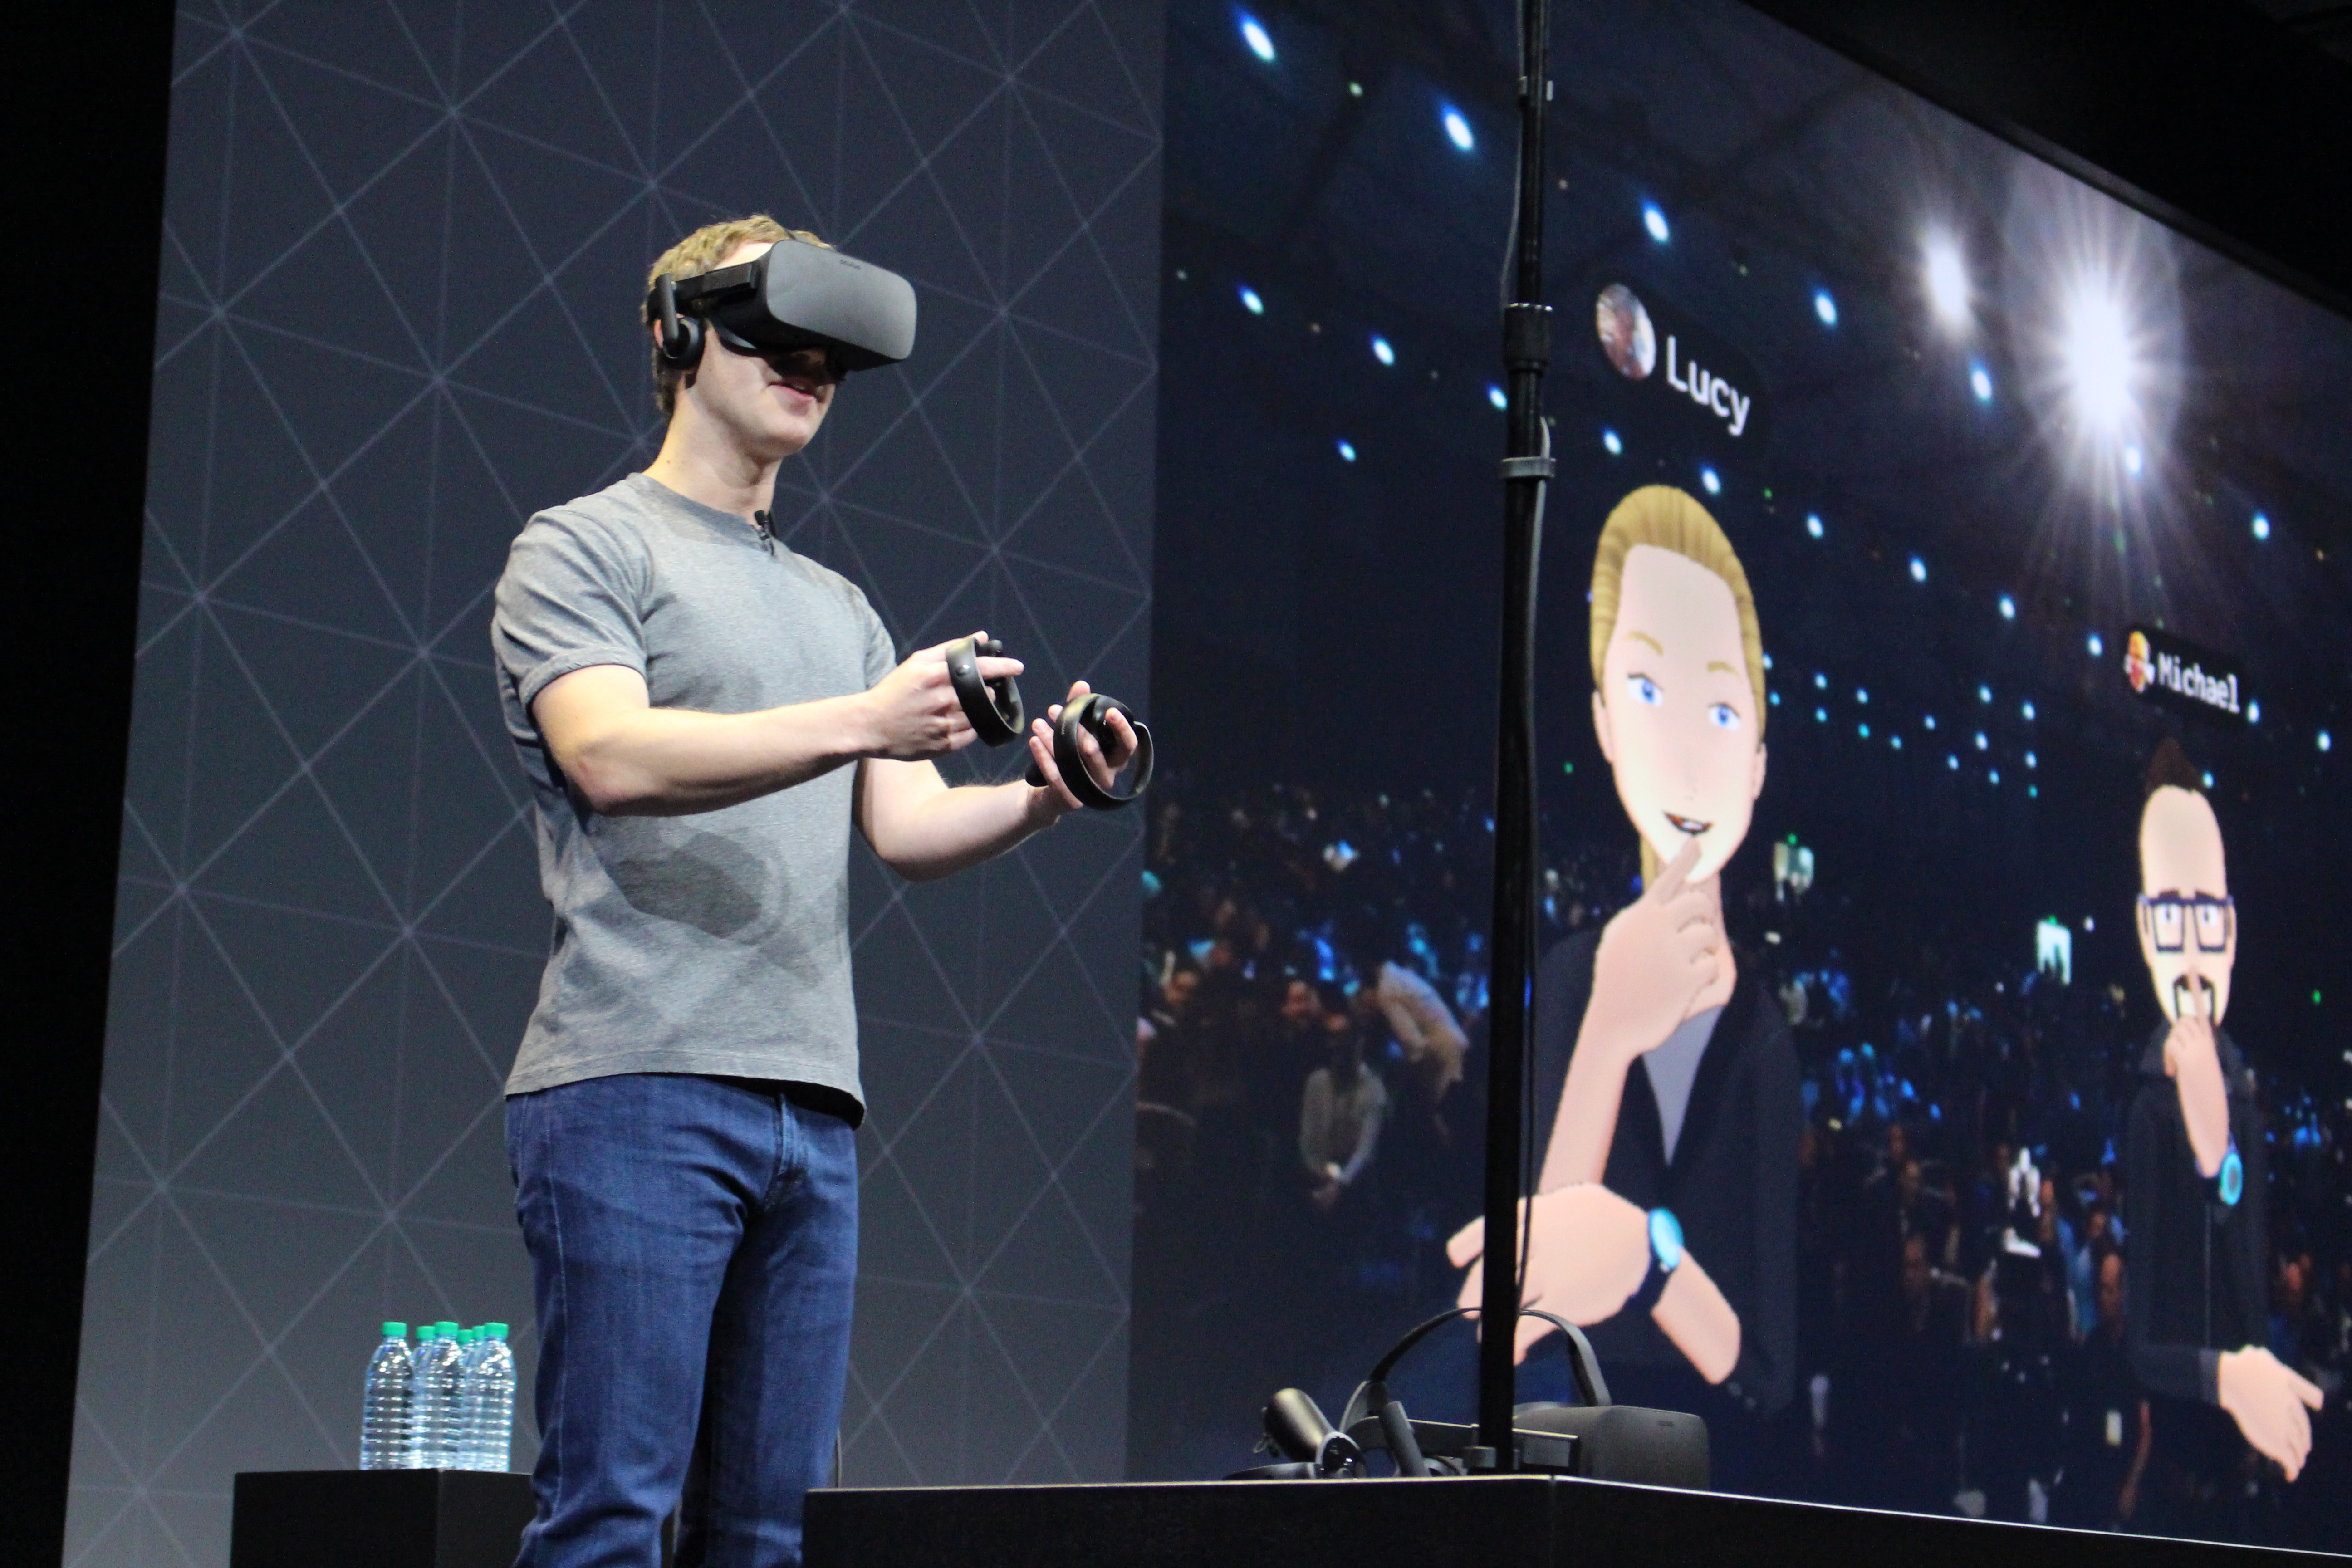 Facebook's Oculus pushes virtual reality with new gear